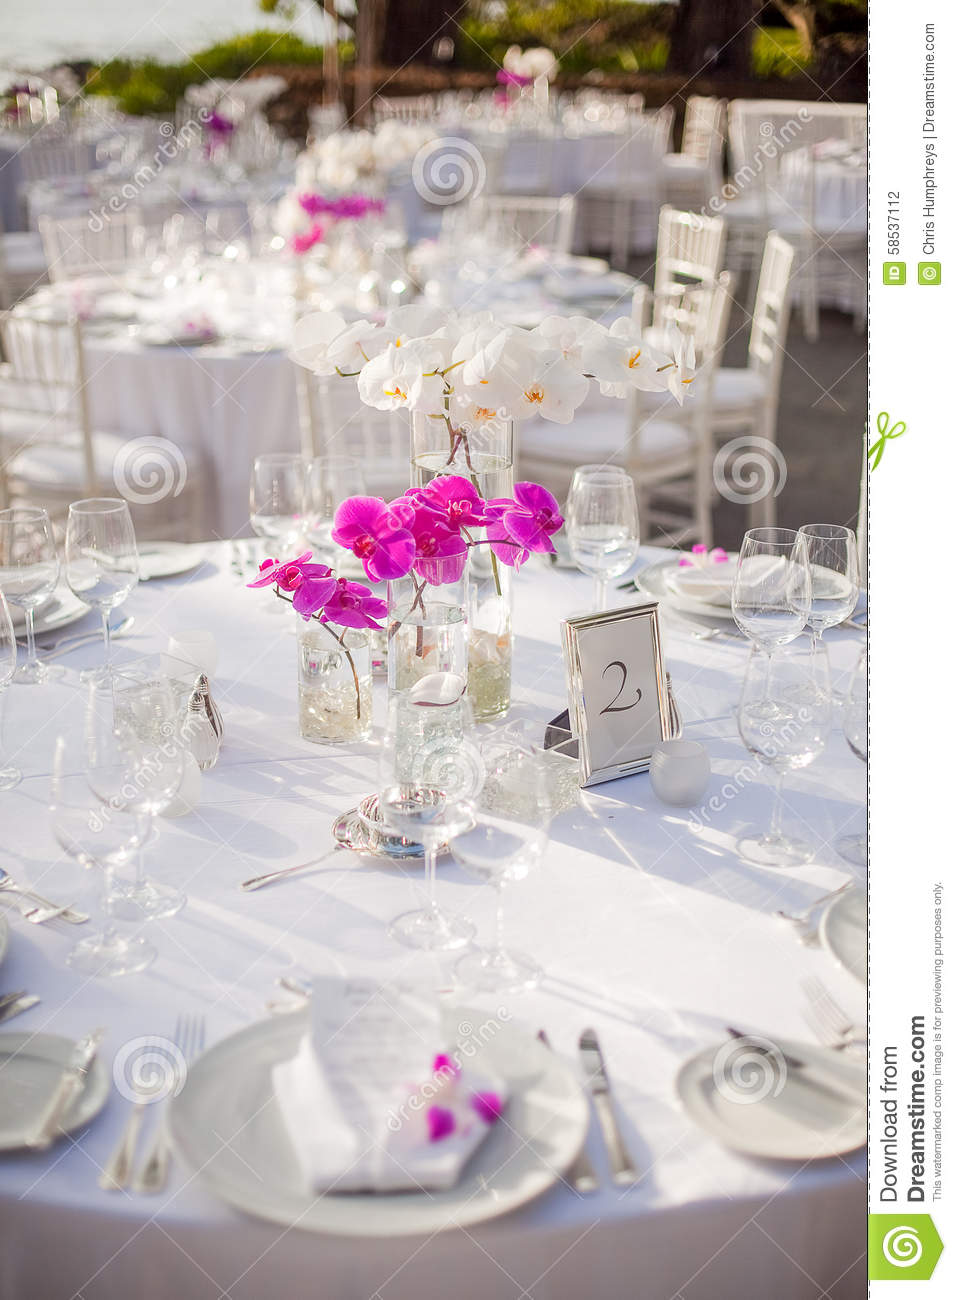 Table Setup For Outdoor Event Stock Photo - Image of event, decor ...